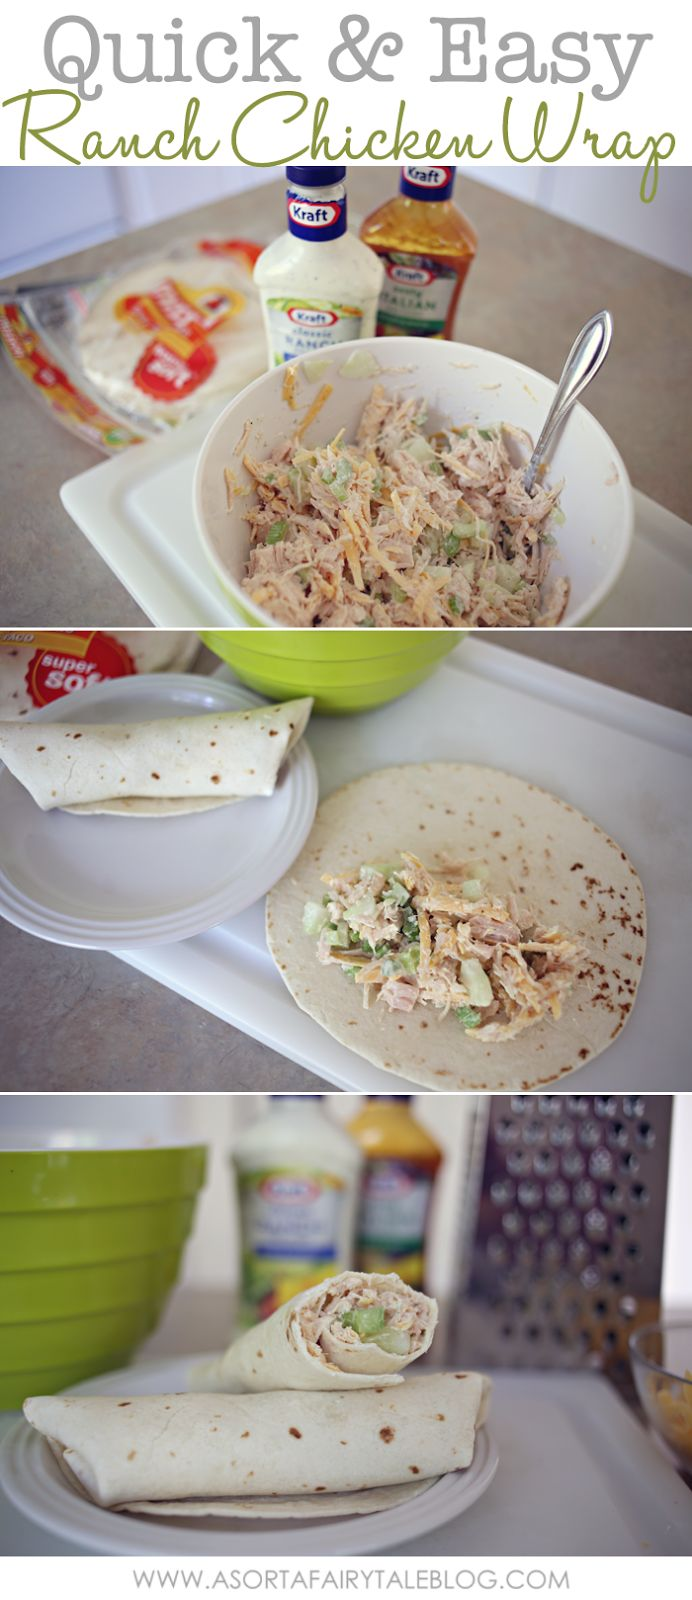 A Sorta Fairytale: Easy Ranch Chicken Wrap Recipe